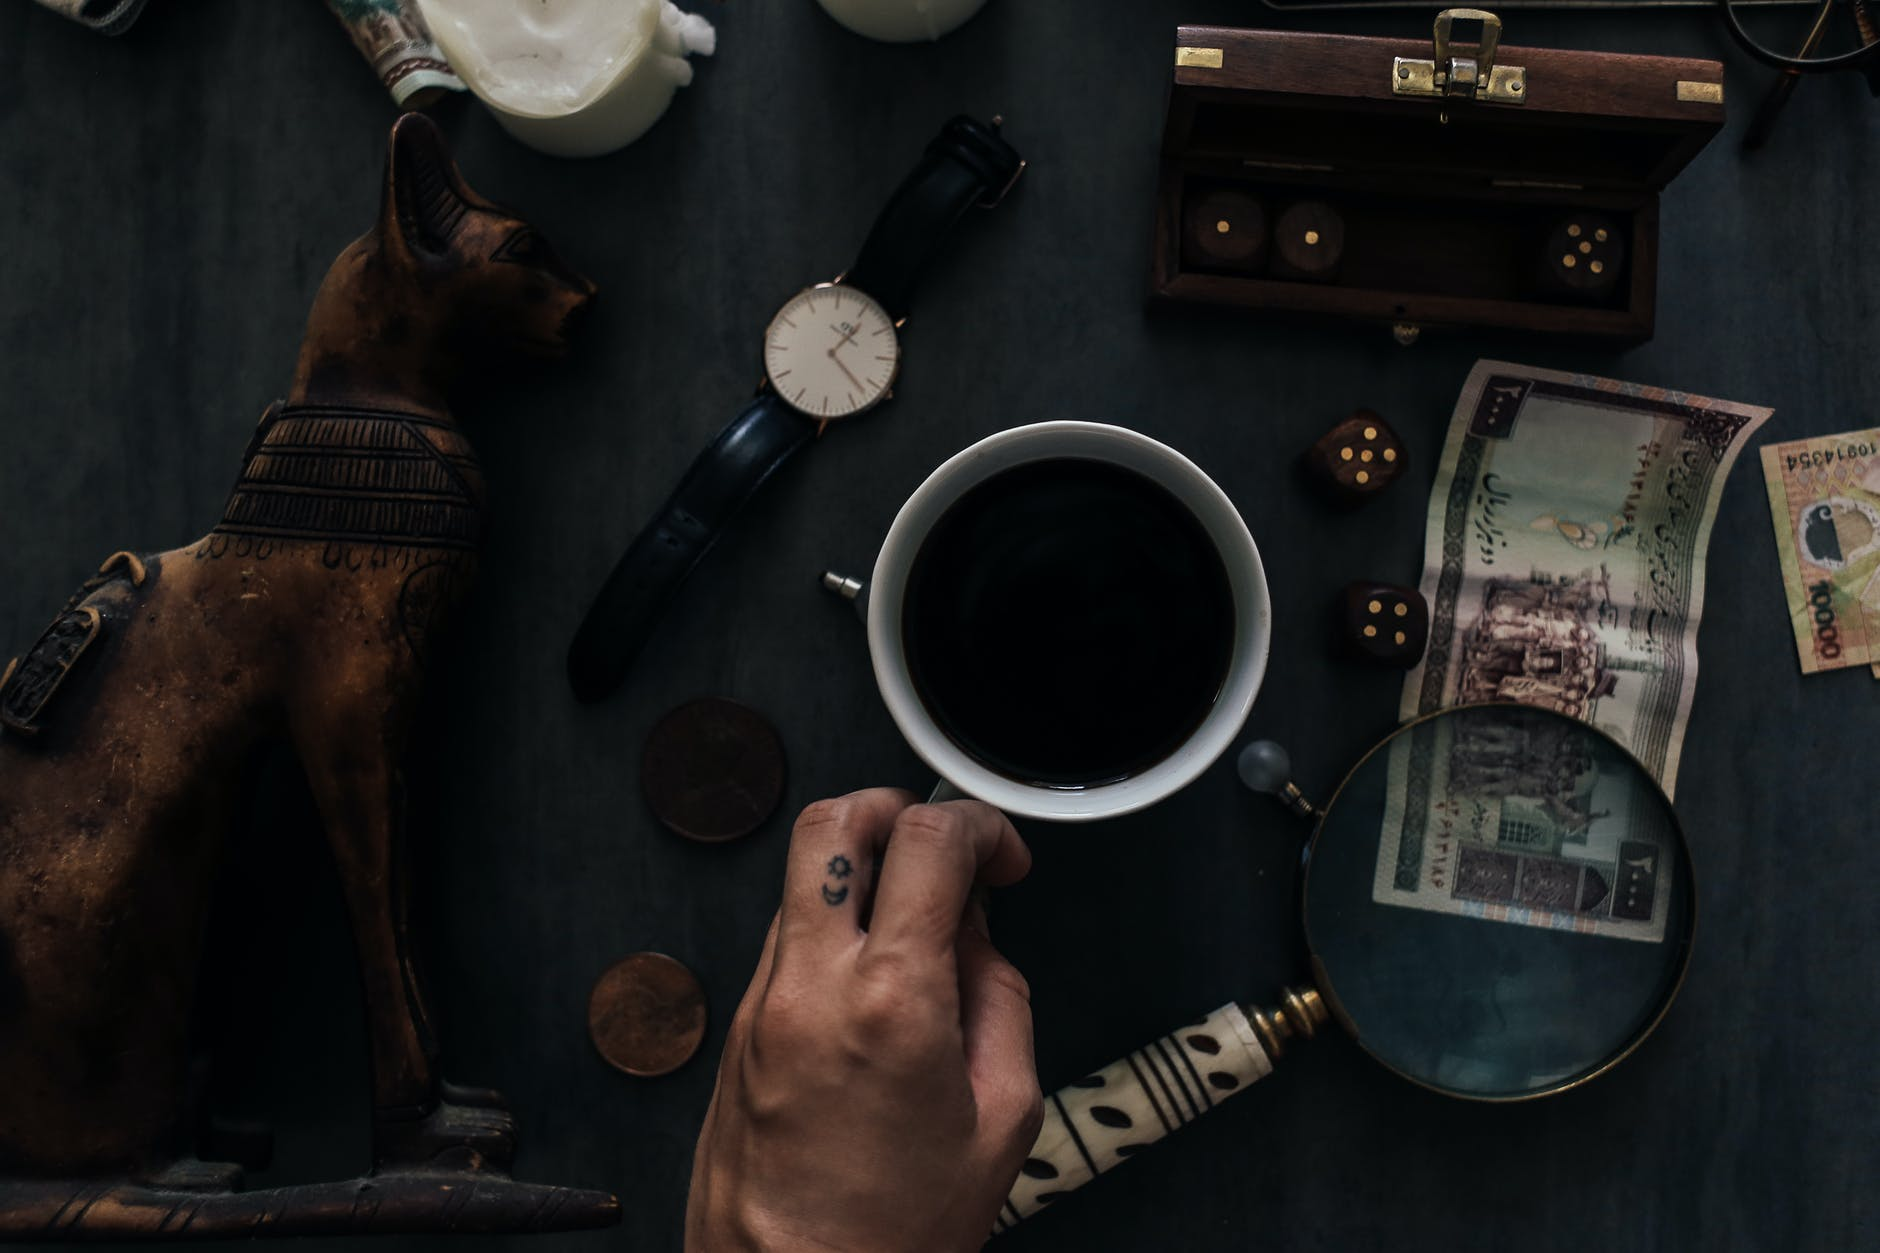 man with coffee at table with old fashioned items